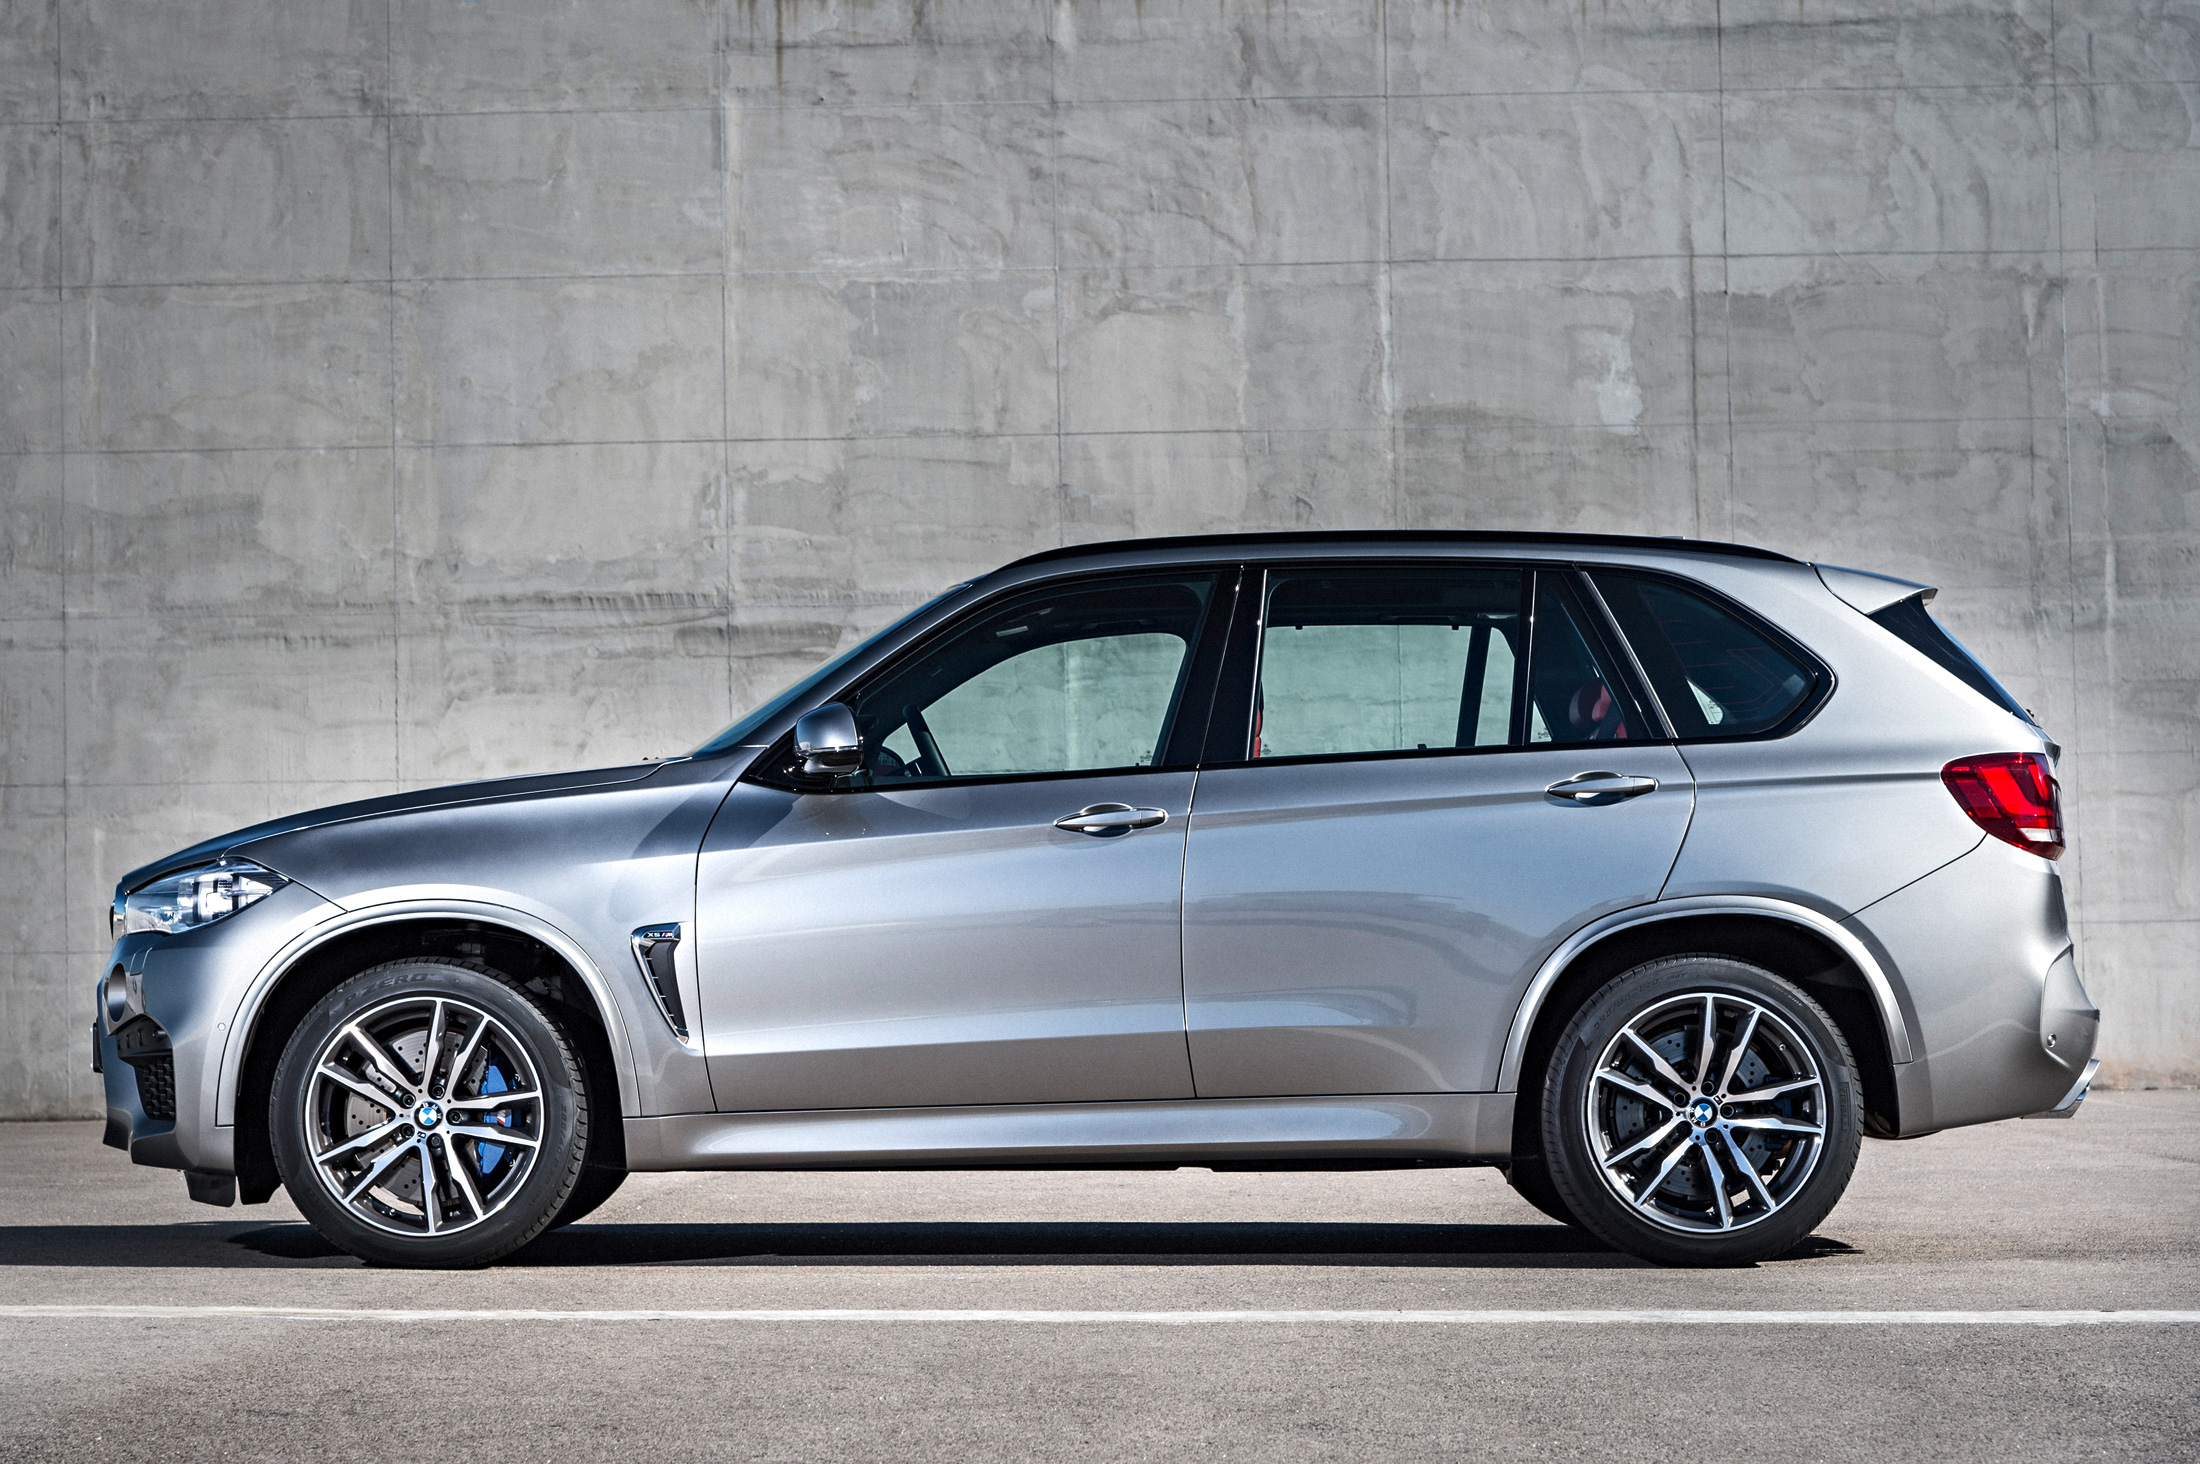 bmw first m front motor en news trend look end